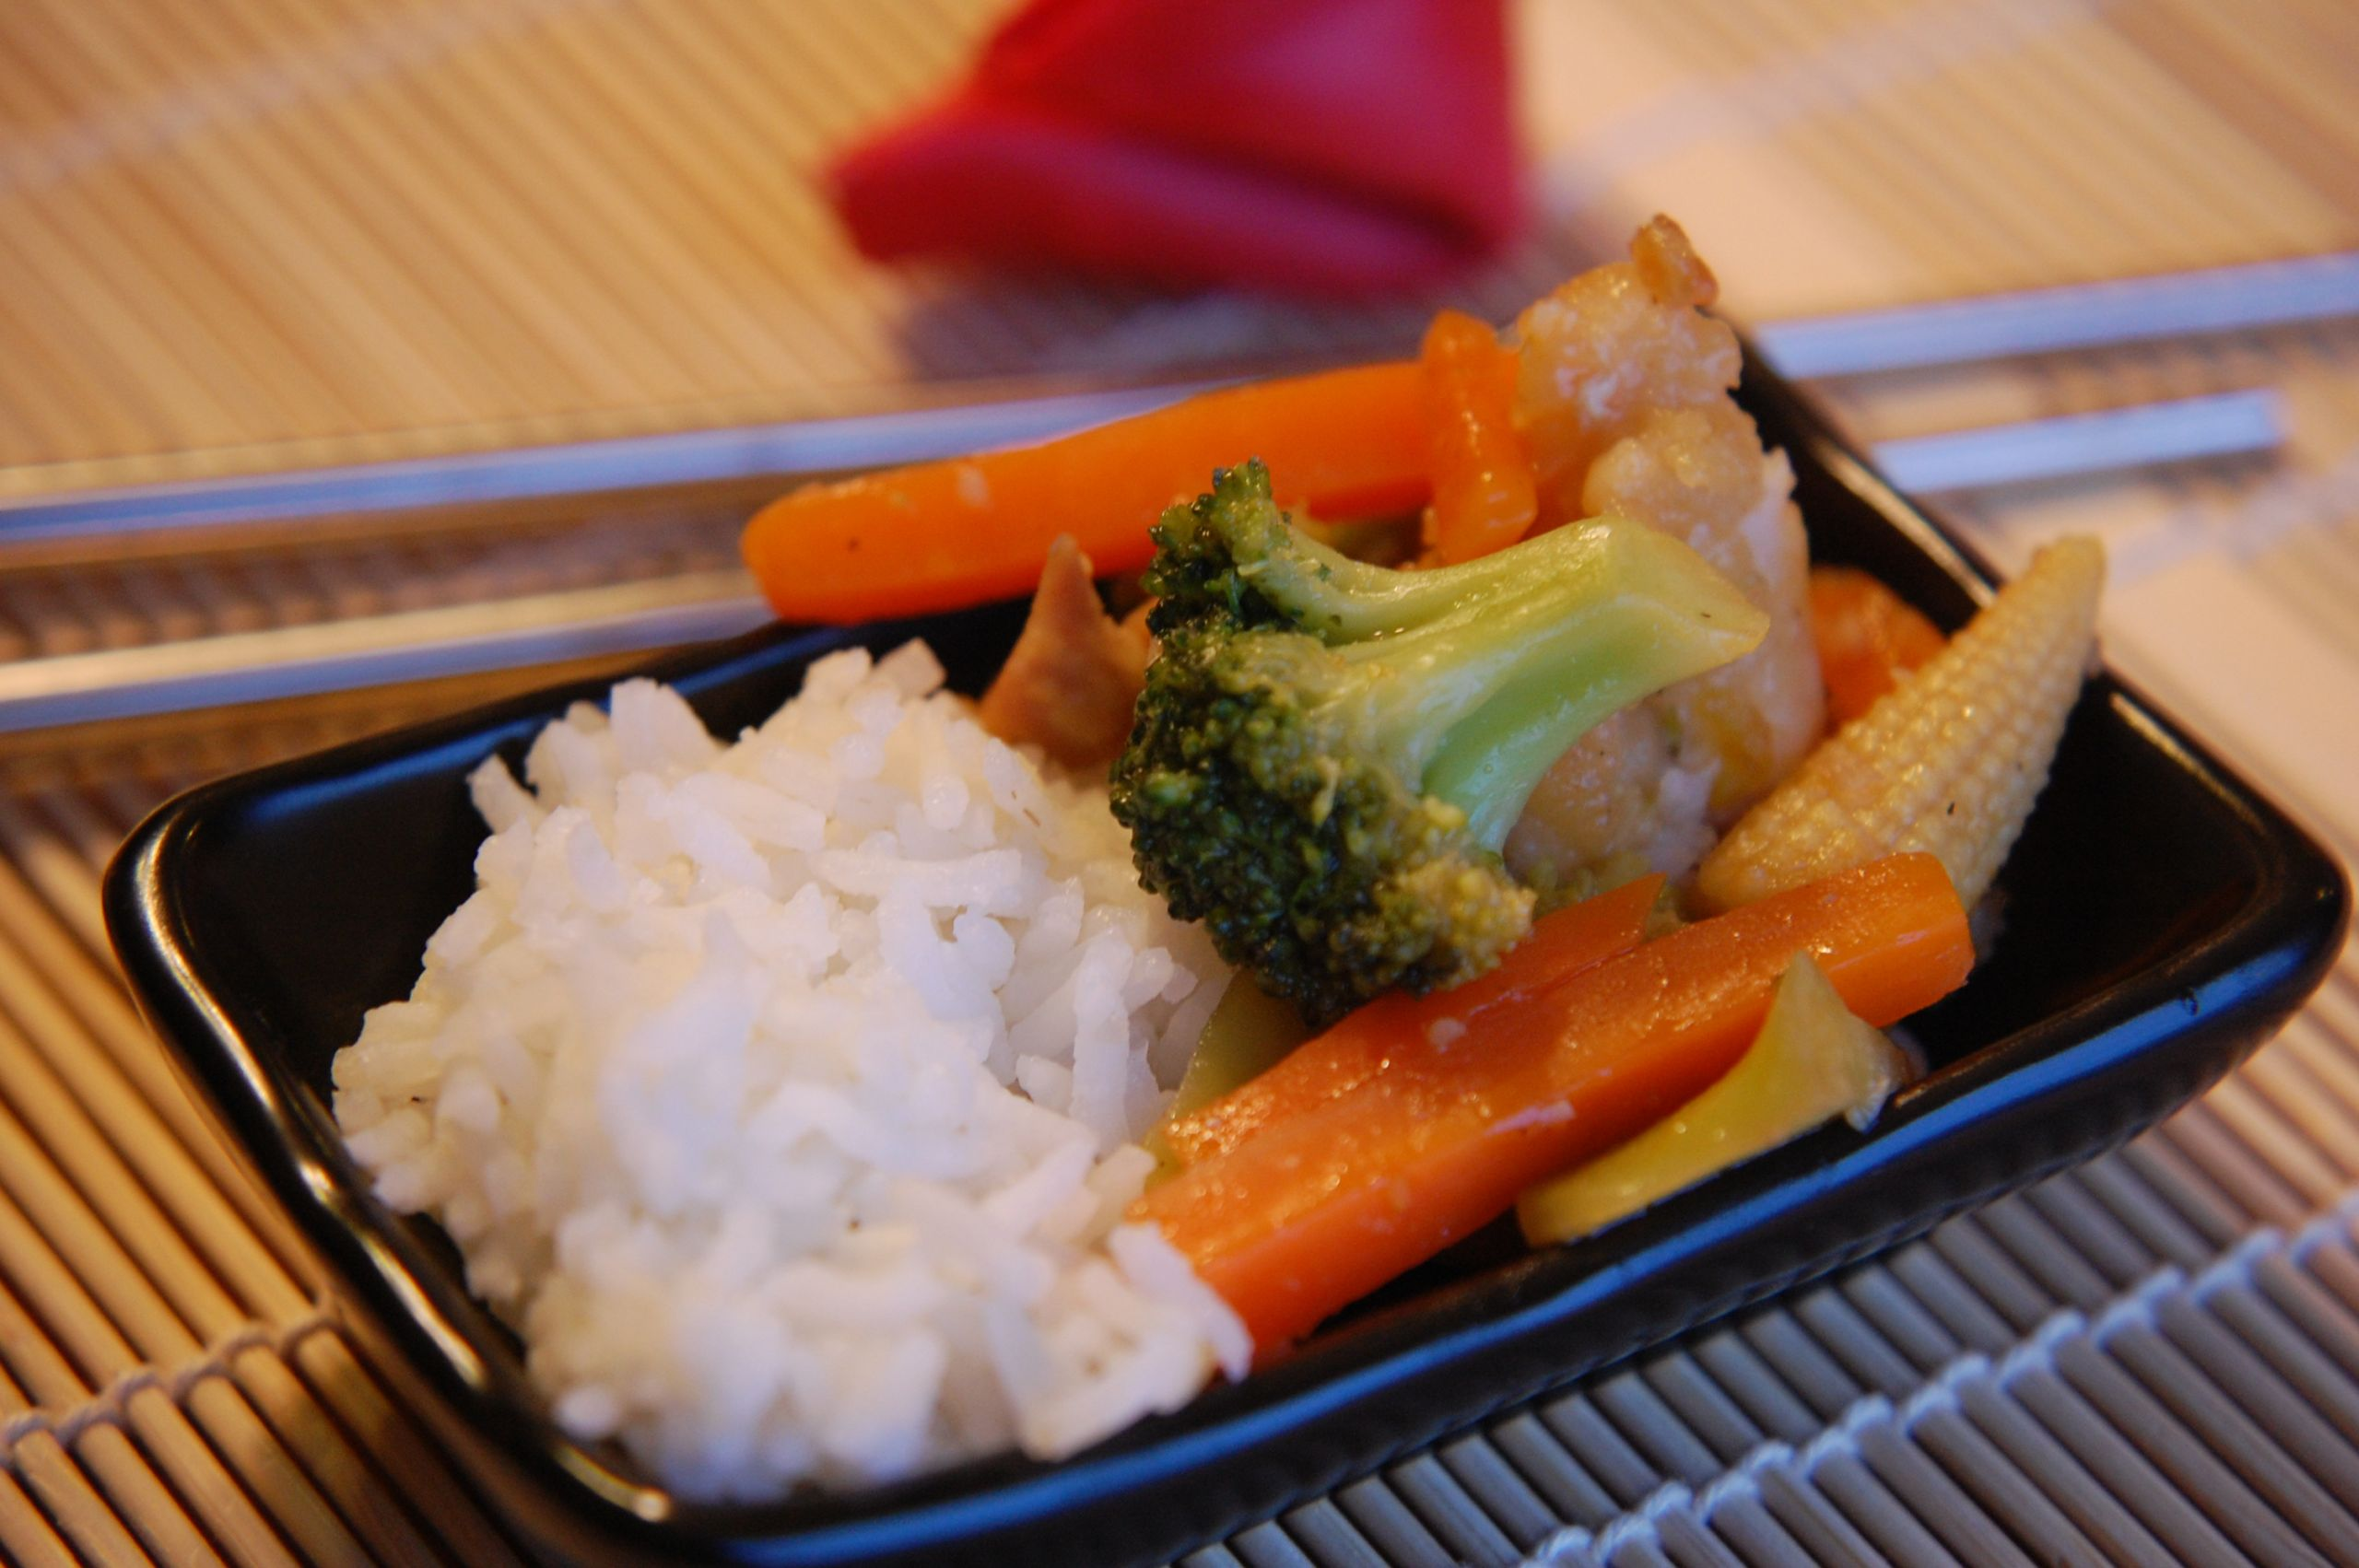 Kids Frozen Dinners  Healthy Freezer Meals For busy nights